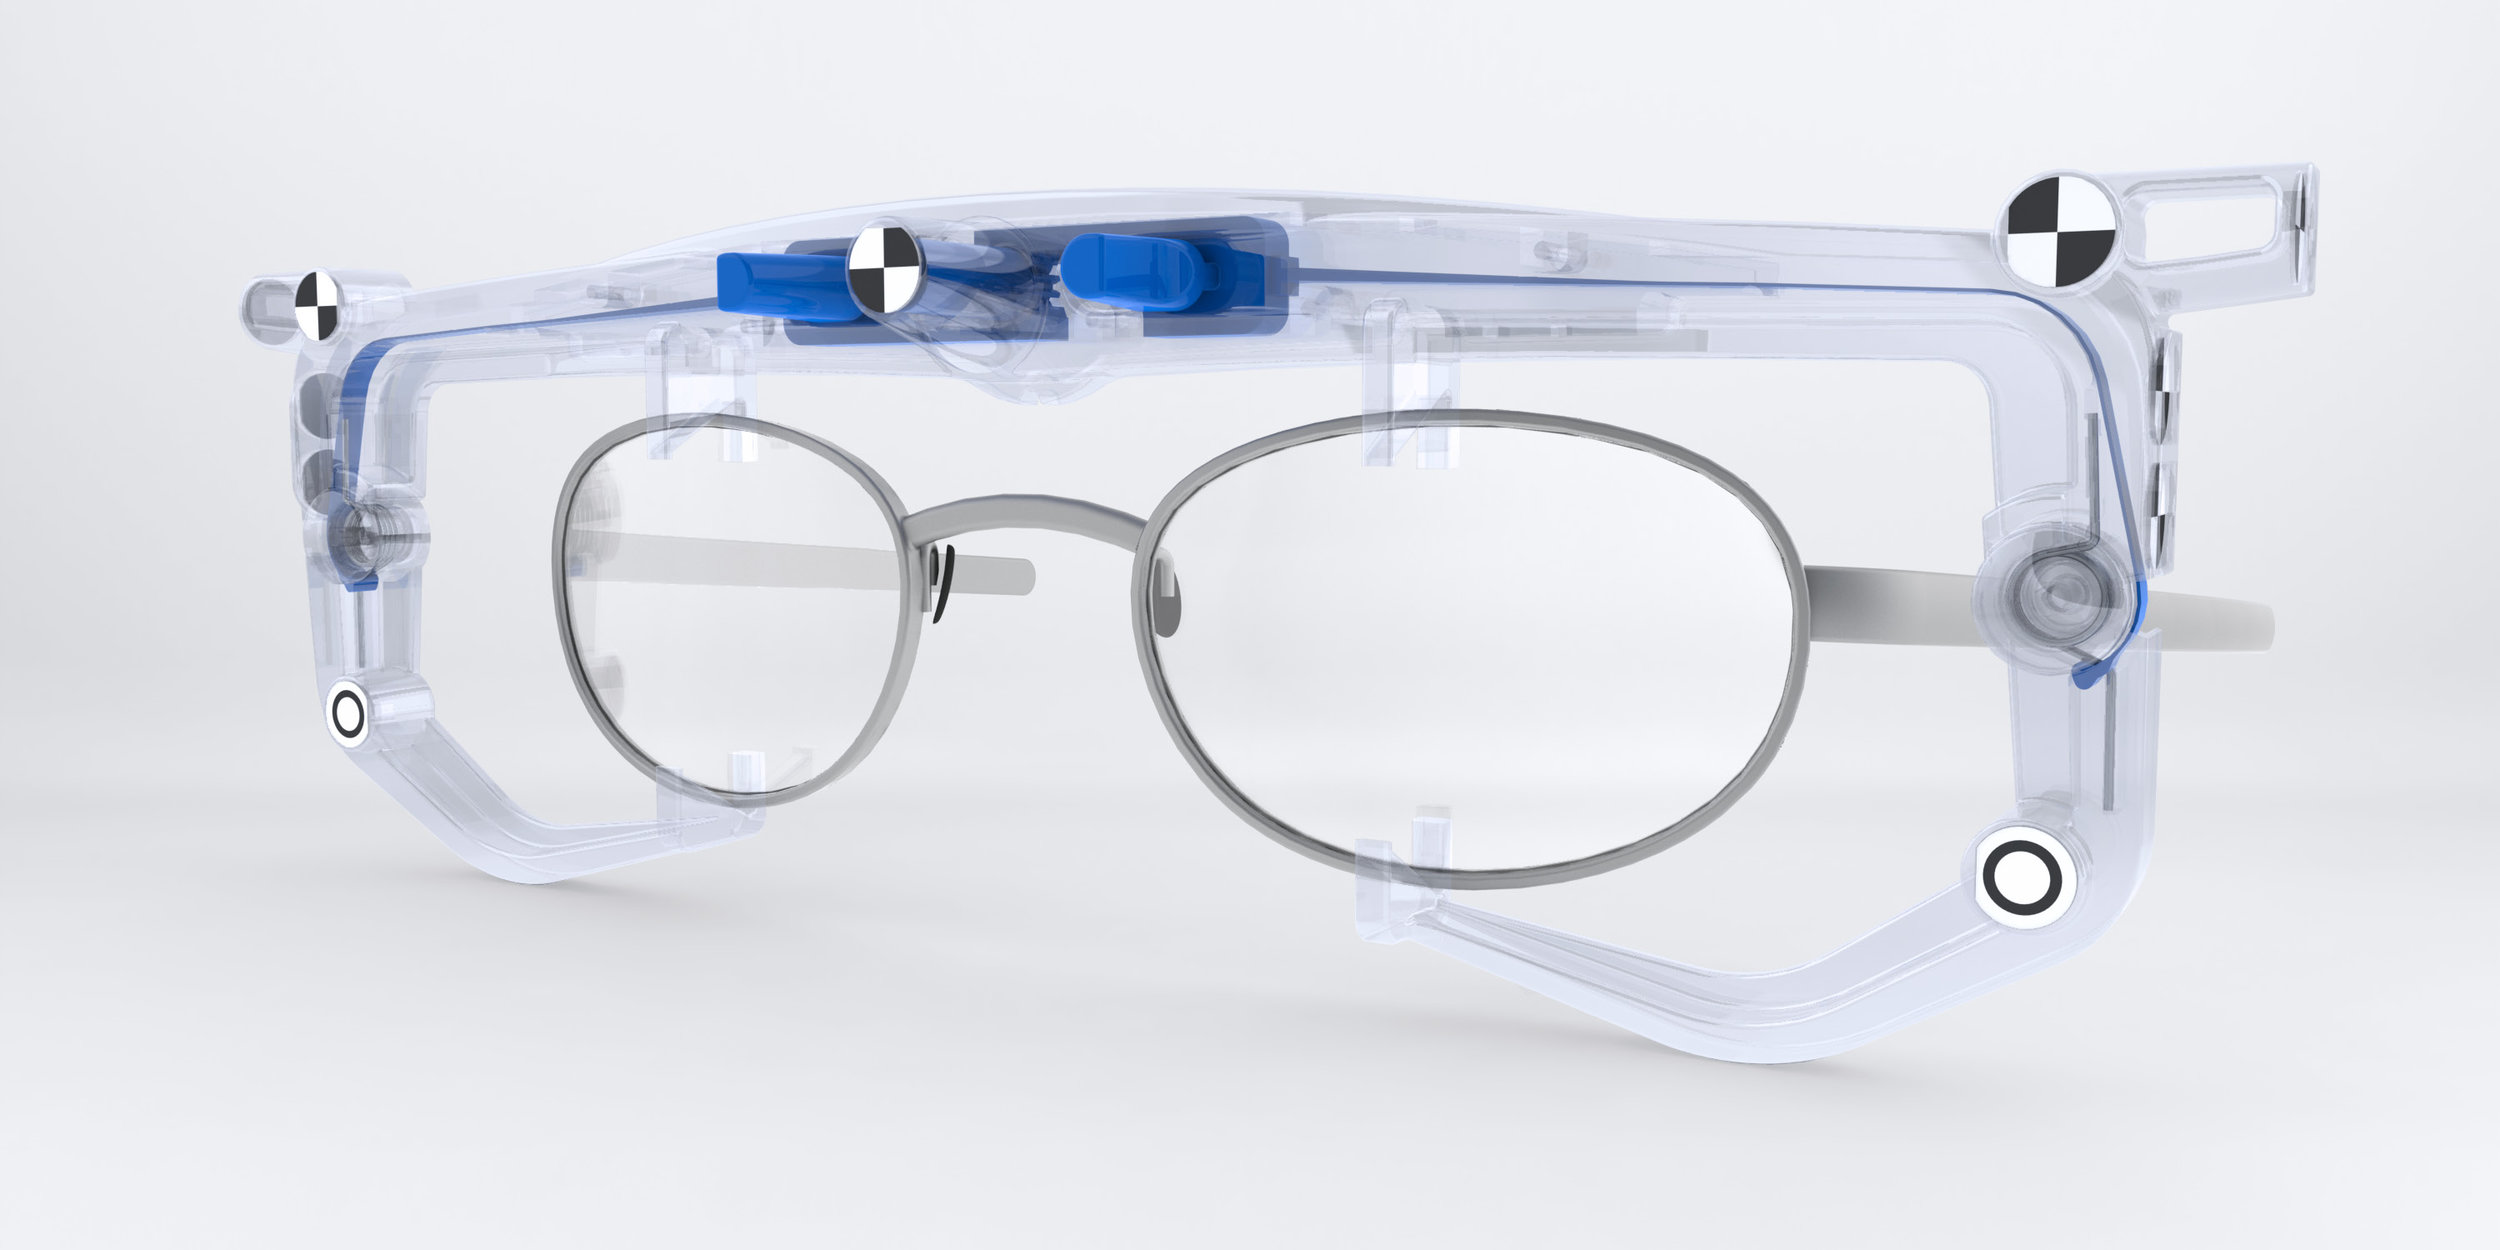 Zeiss Relaxed Vision 02.jpg